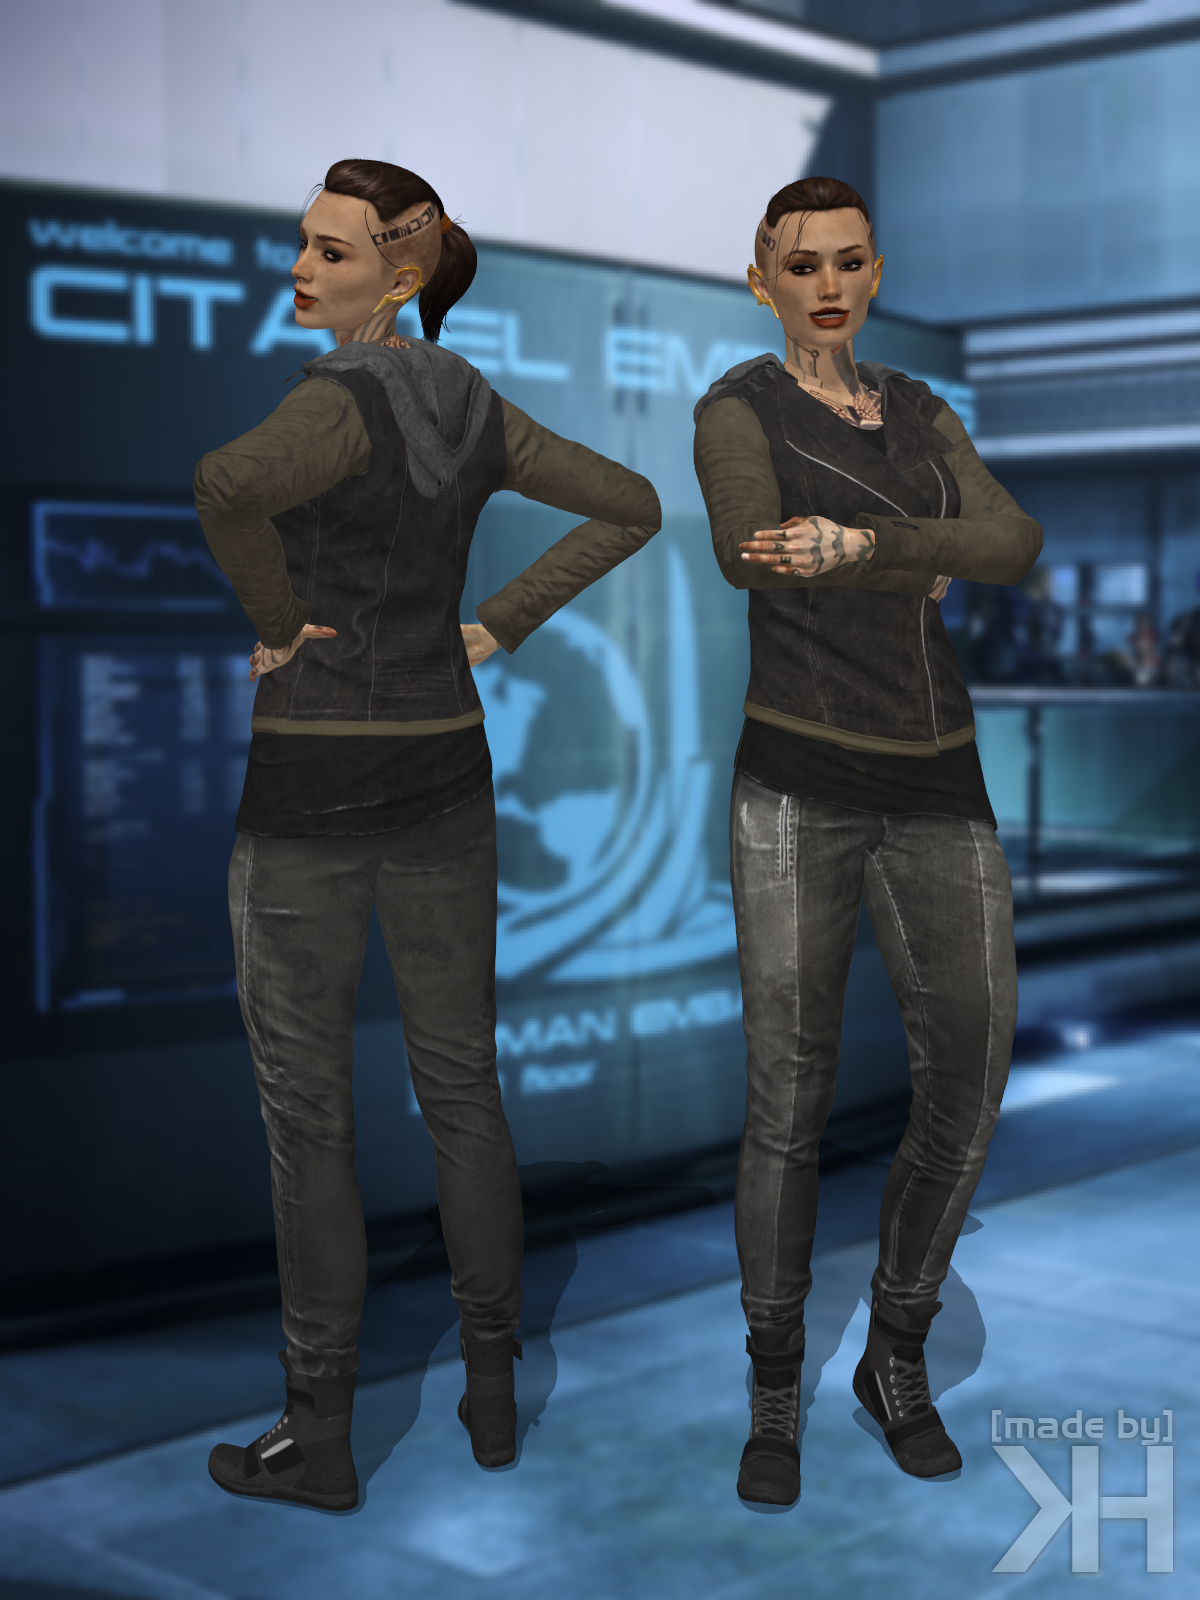 Jack Casual Runner Outfit (XPS)